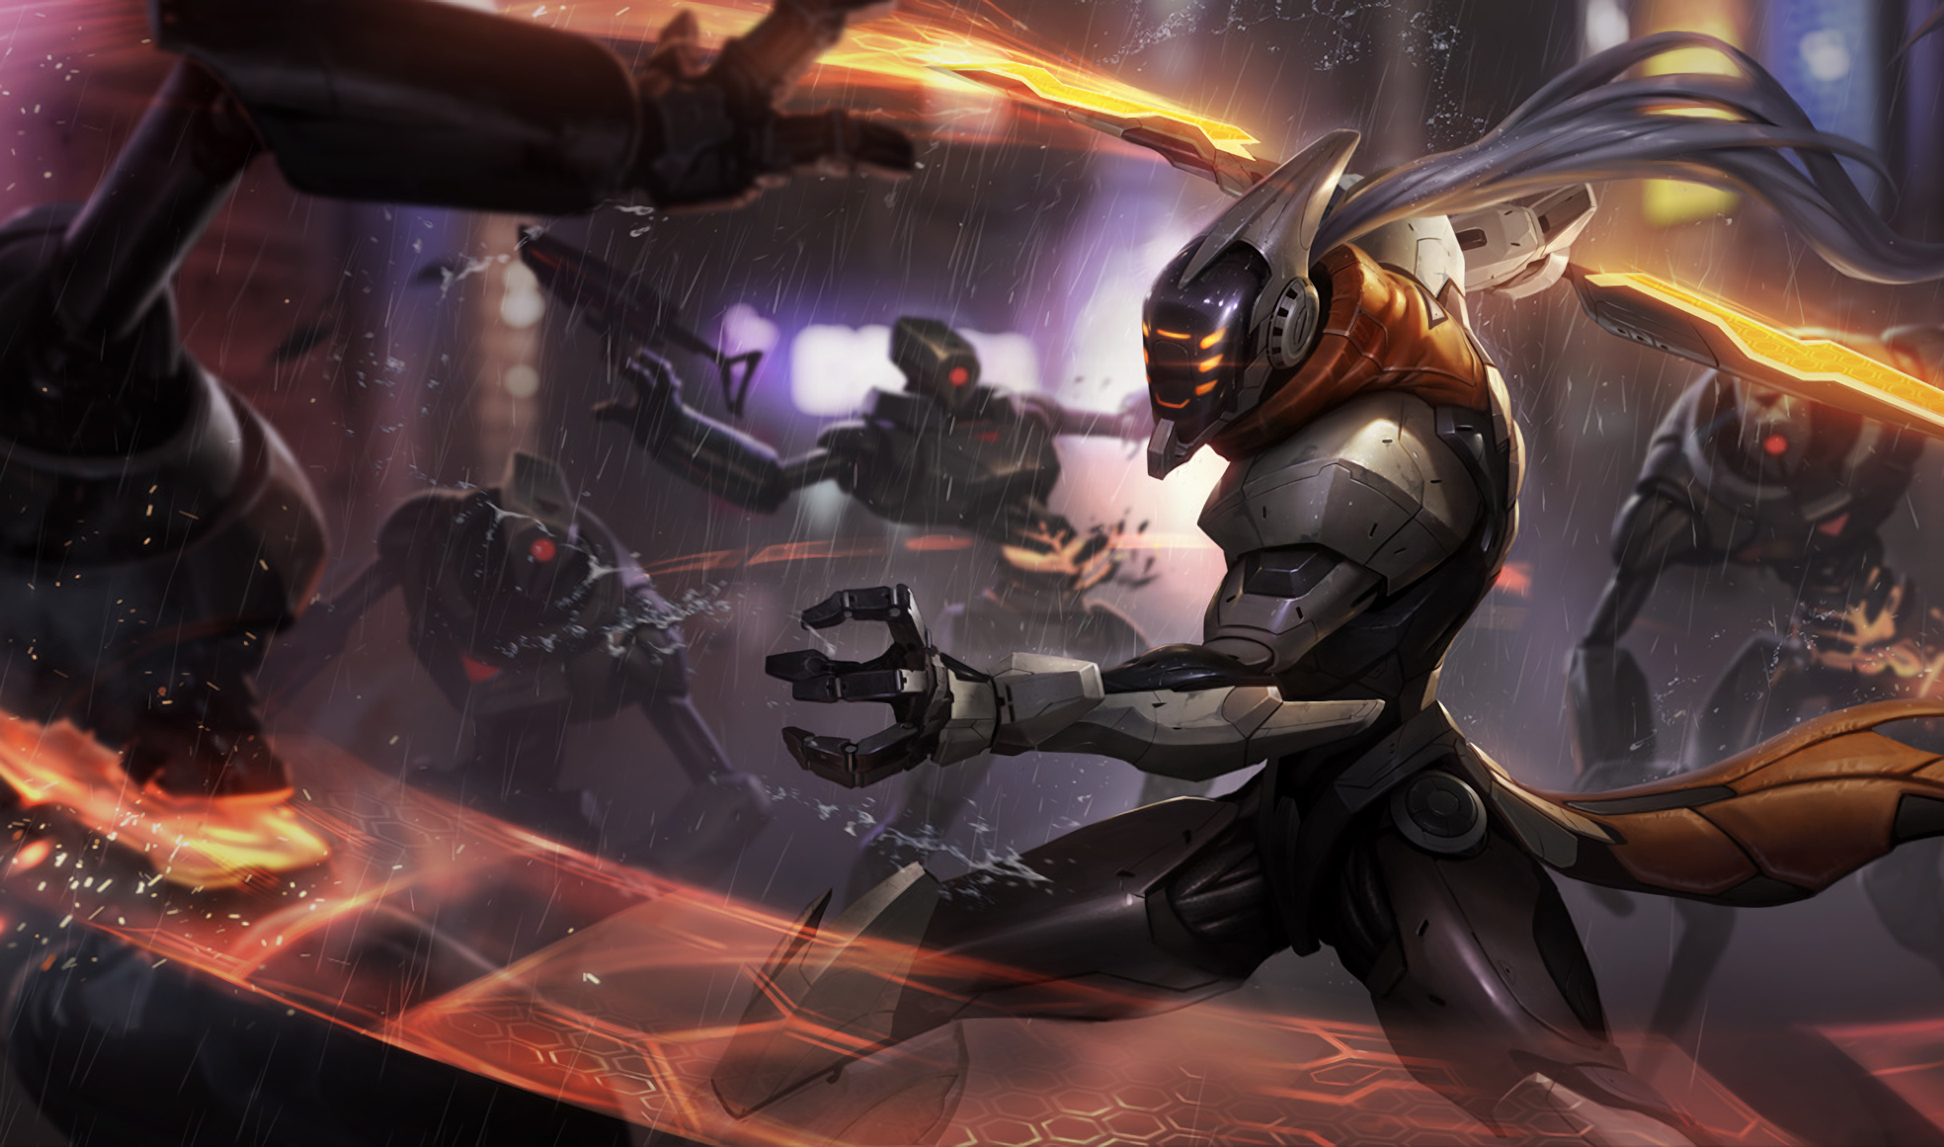 Project Master Yi Computer Wallpapers Desktop Backgrounds 1944x1147 Id 627081 Lol League Of Legends Lol Champions League Of Legends